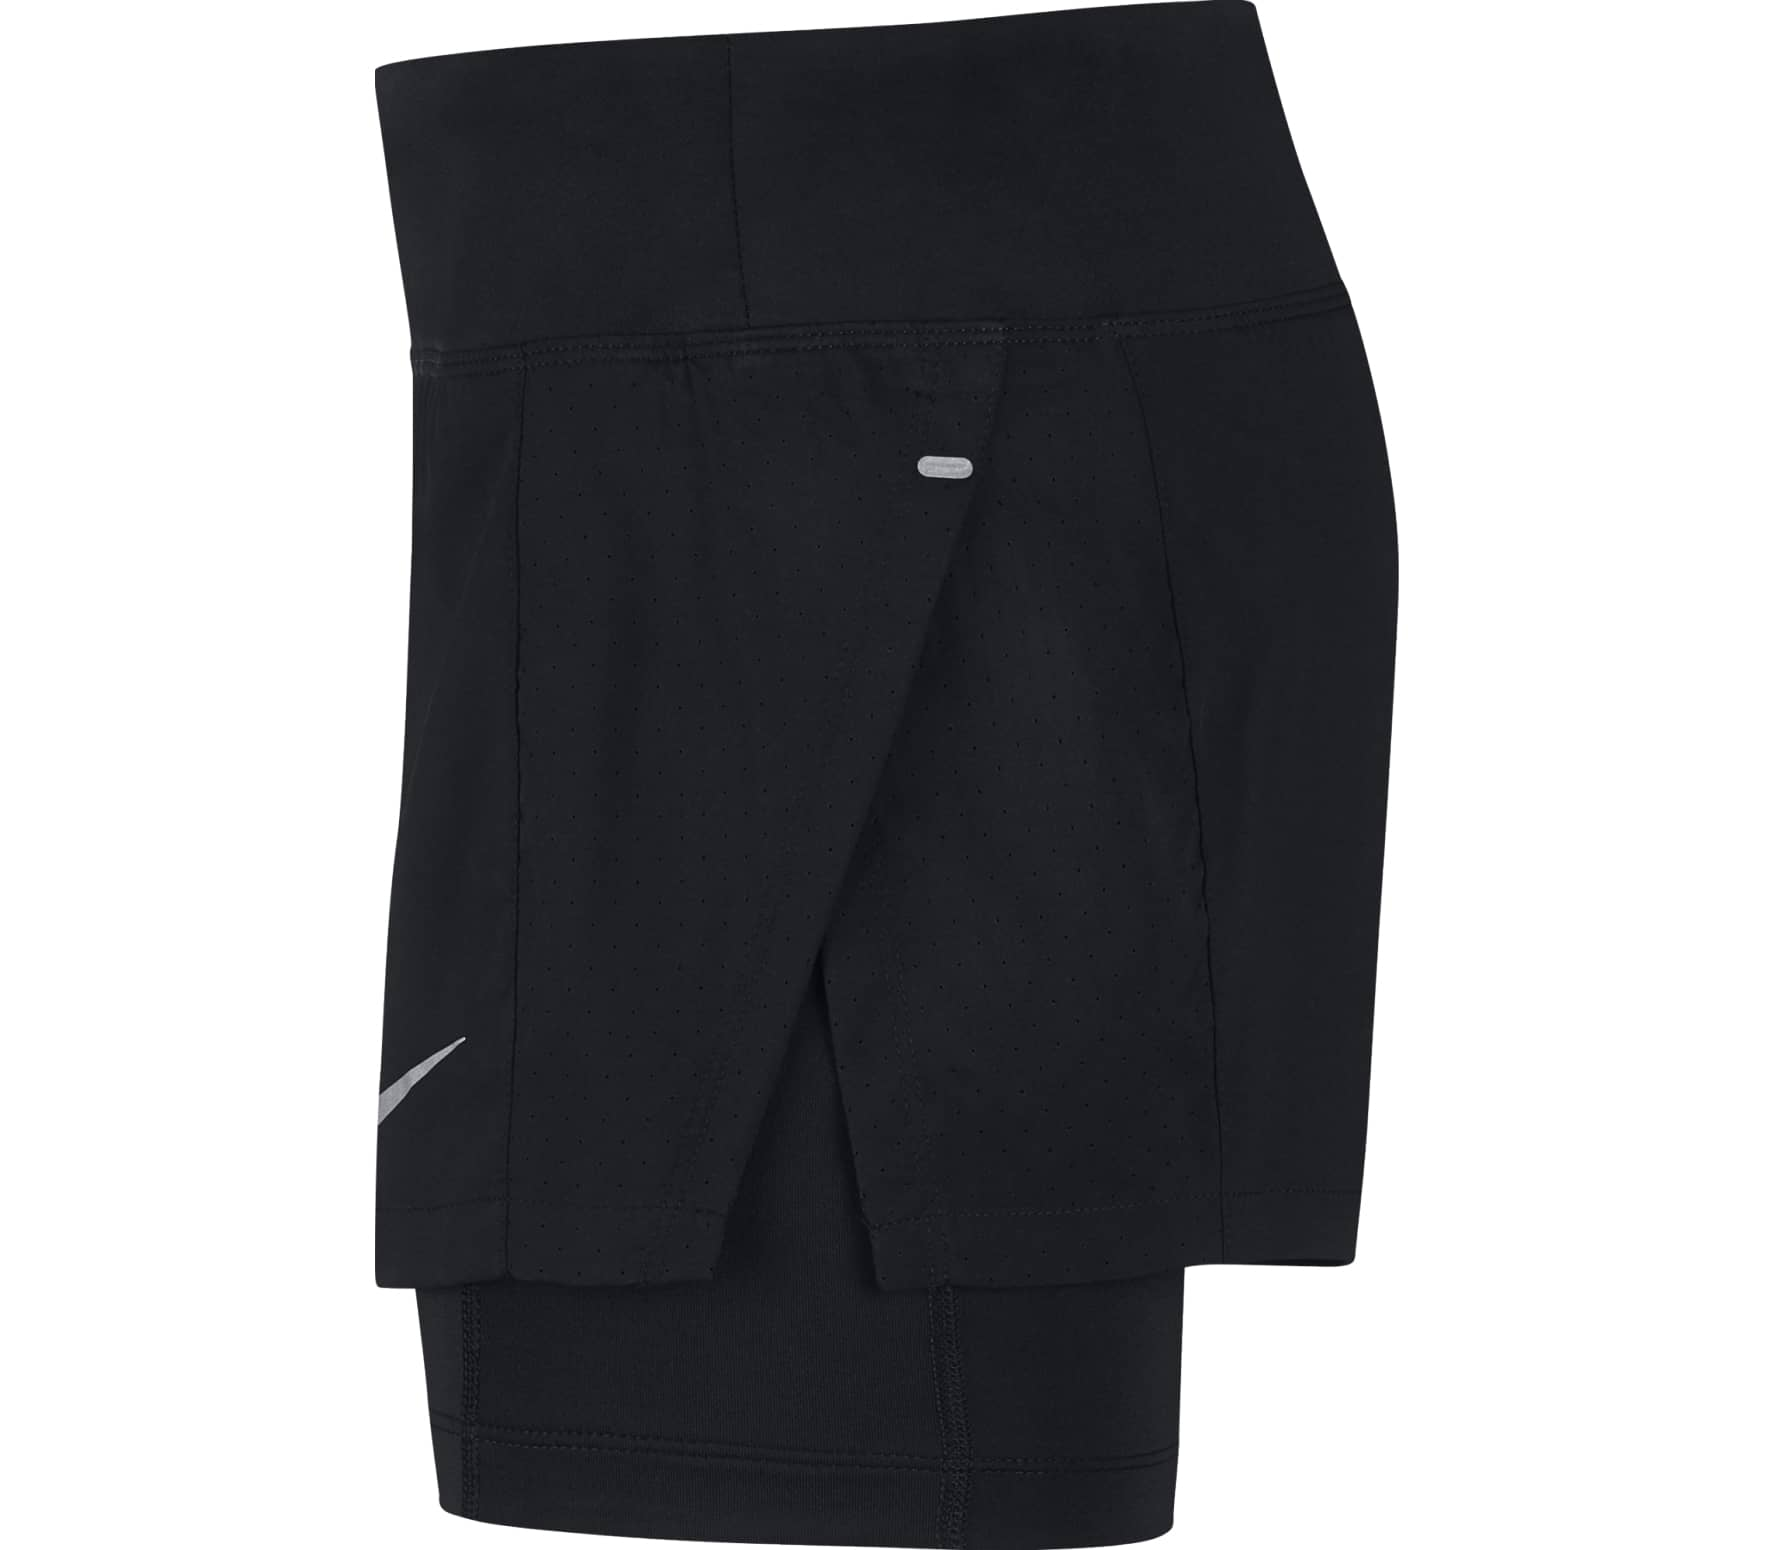 quality design f3442 53082 Nike - Eclipse 2-in-1 womens running shorts (black)